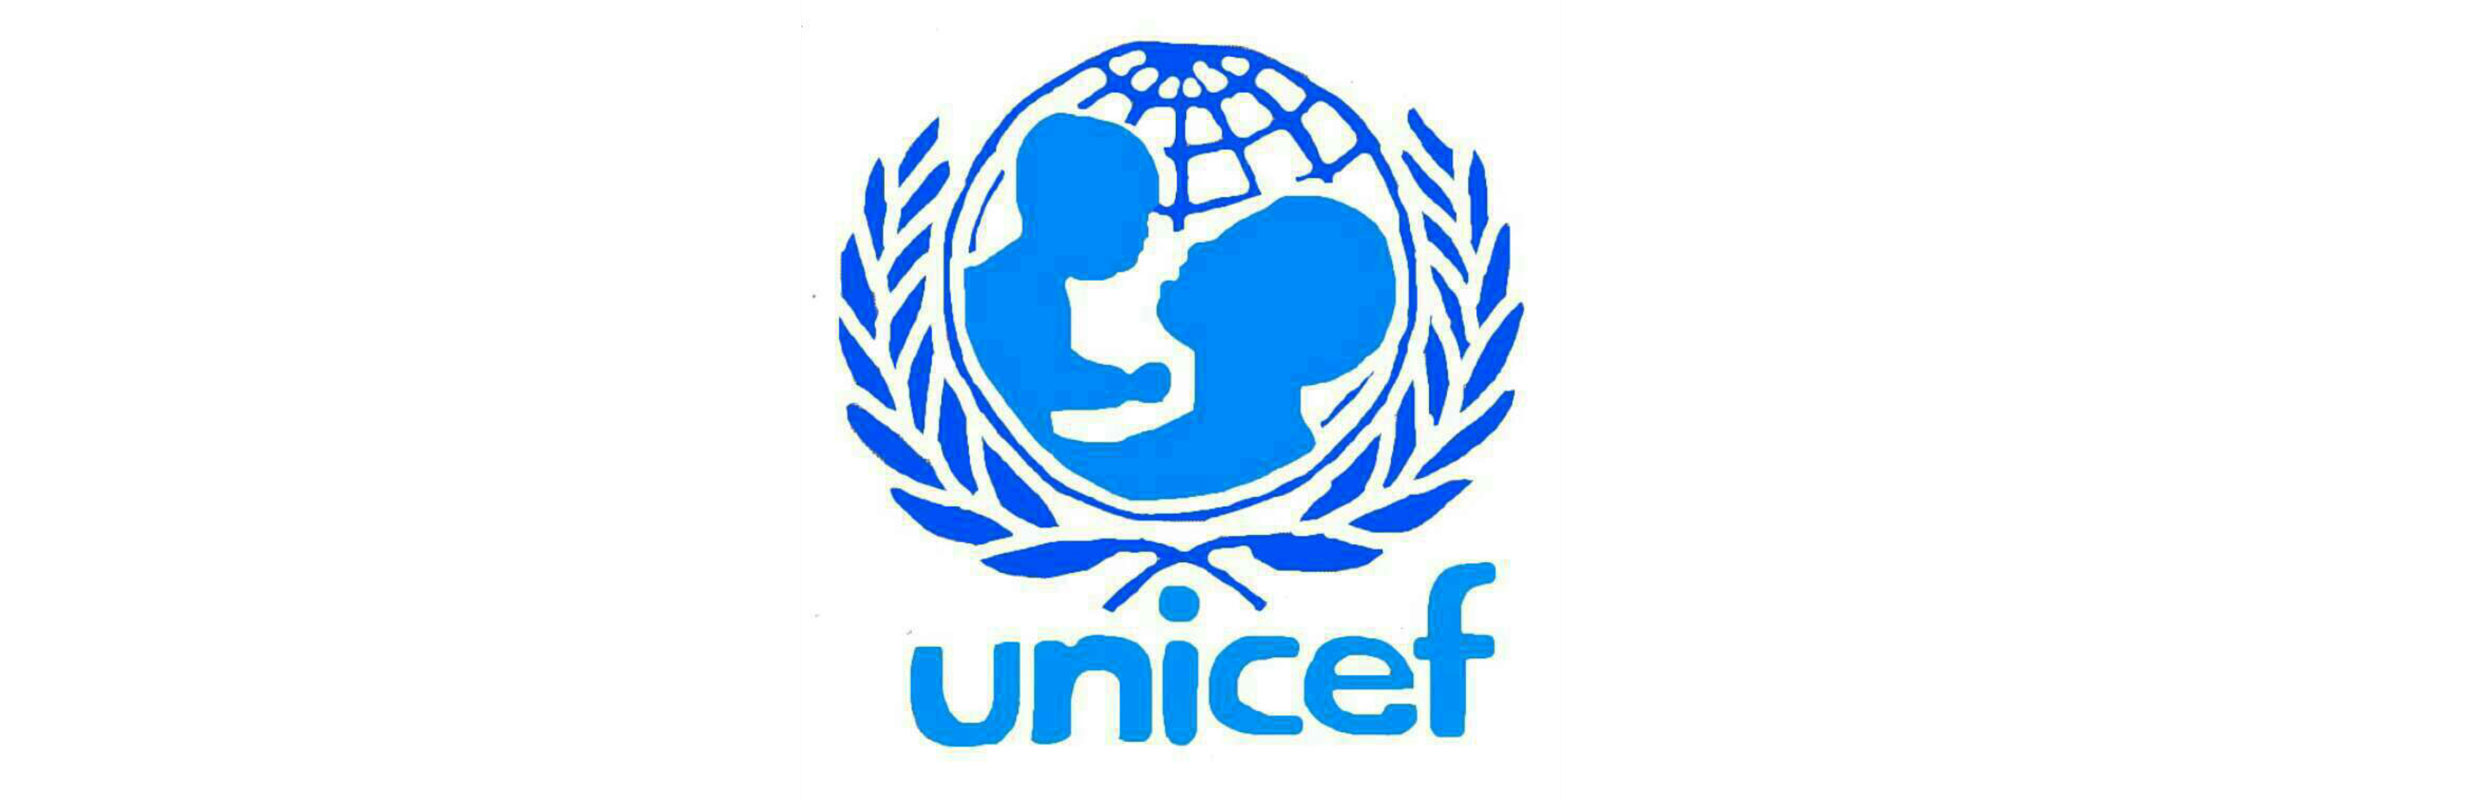 Unicef Is Using Snapchat To Highlight Children Missing Out On Their Childhood In Nigeria on United Nations Logo